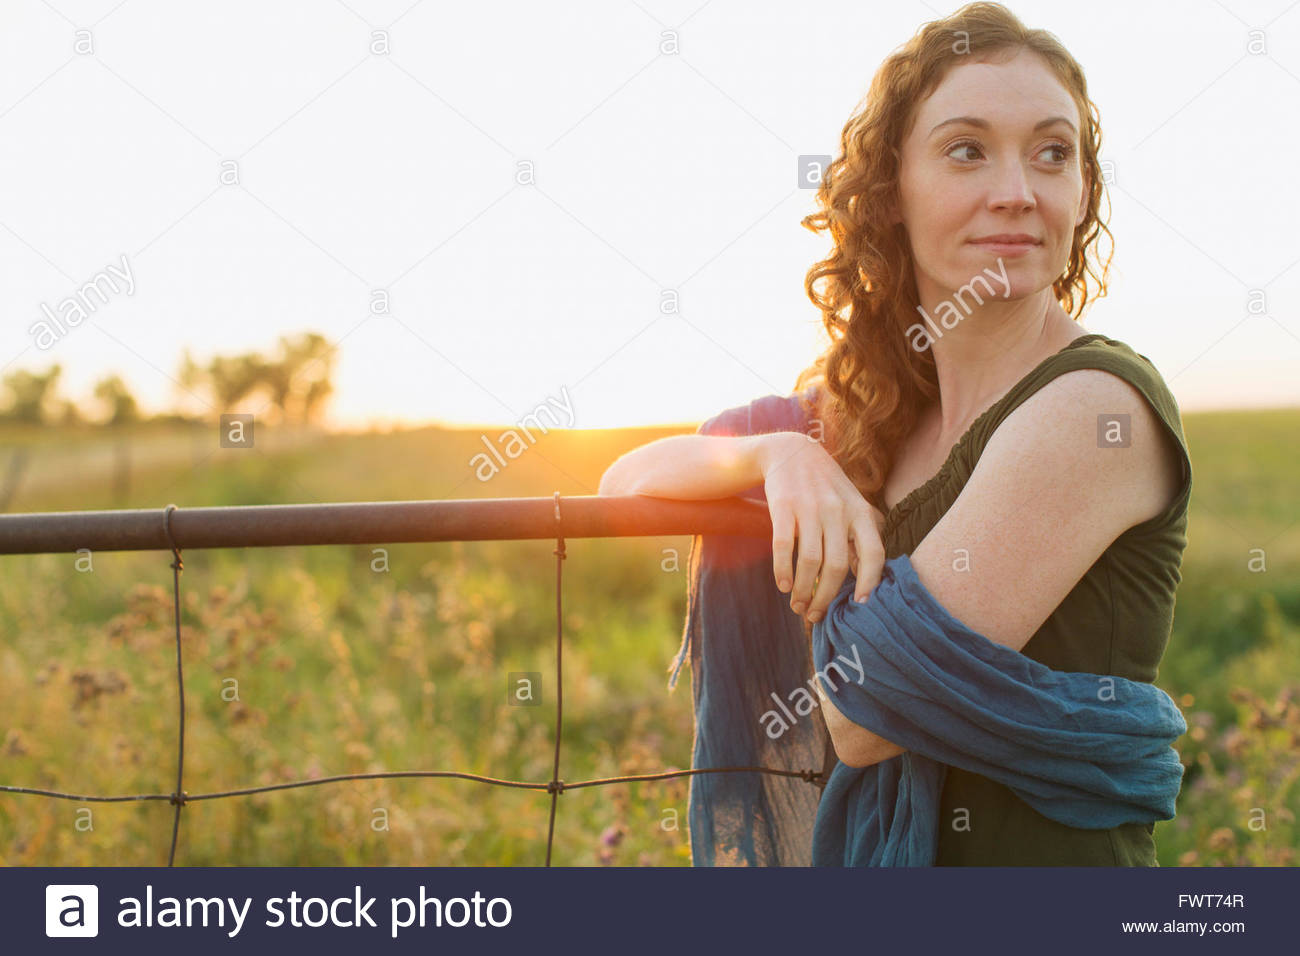 Pretty woman leaning on fence outdoors. - Stock Image